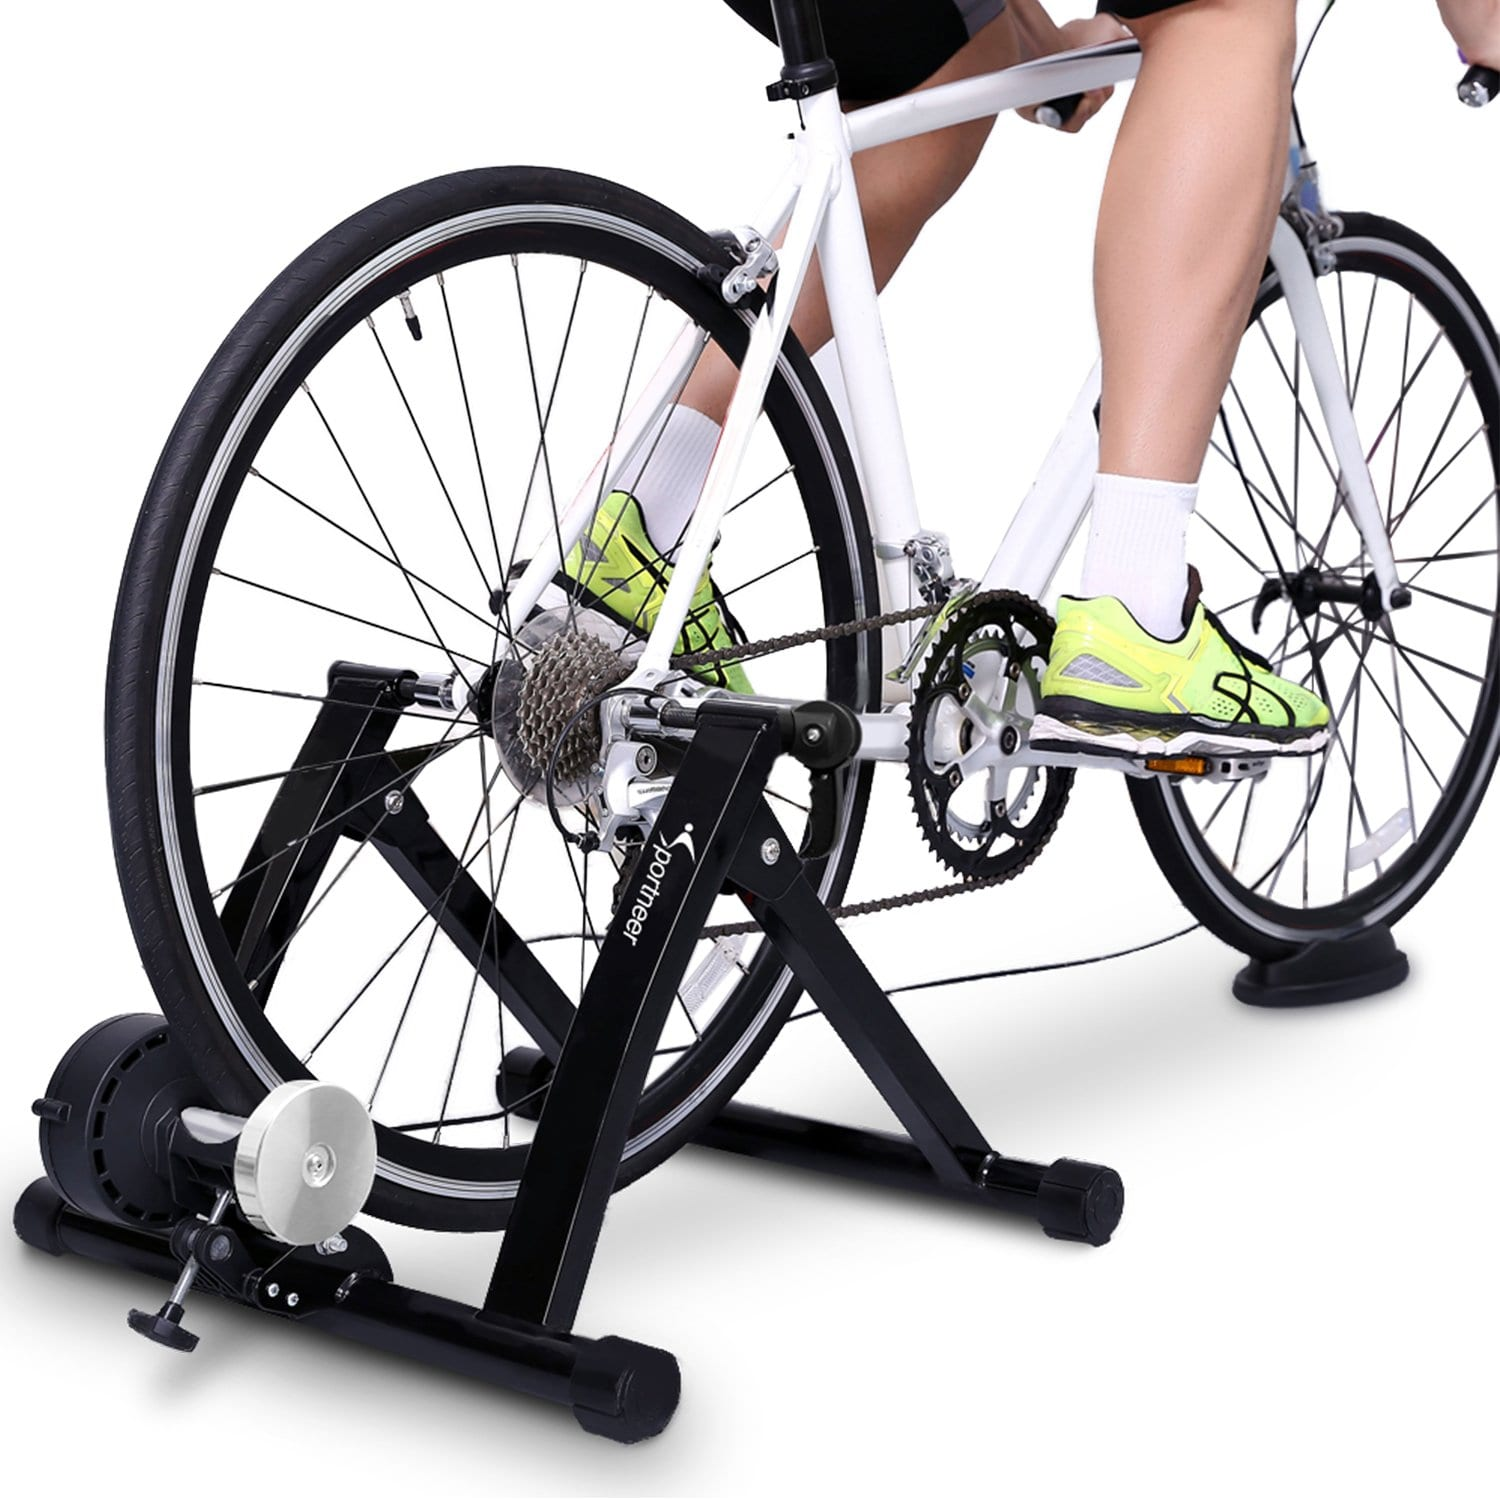 Sportneer Bike Trainer Stand with Noise Reduction Wheel